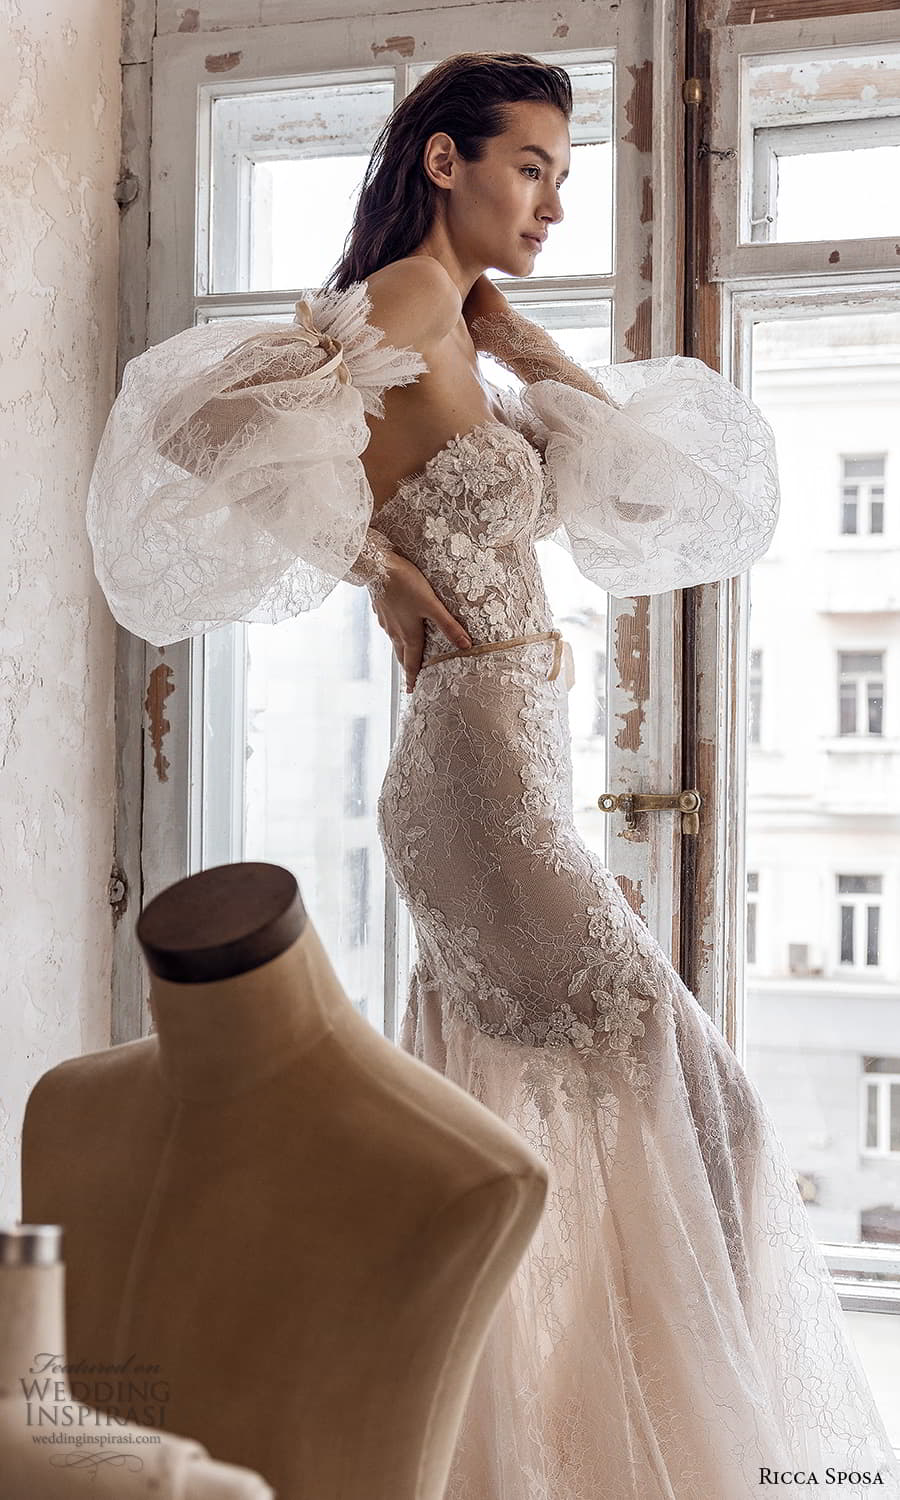 ricca sposa 2022 bridal detached puff sleeve strapless sweetheart neckline fully embellished fit flare wedding dress chapel train (15) zsv